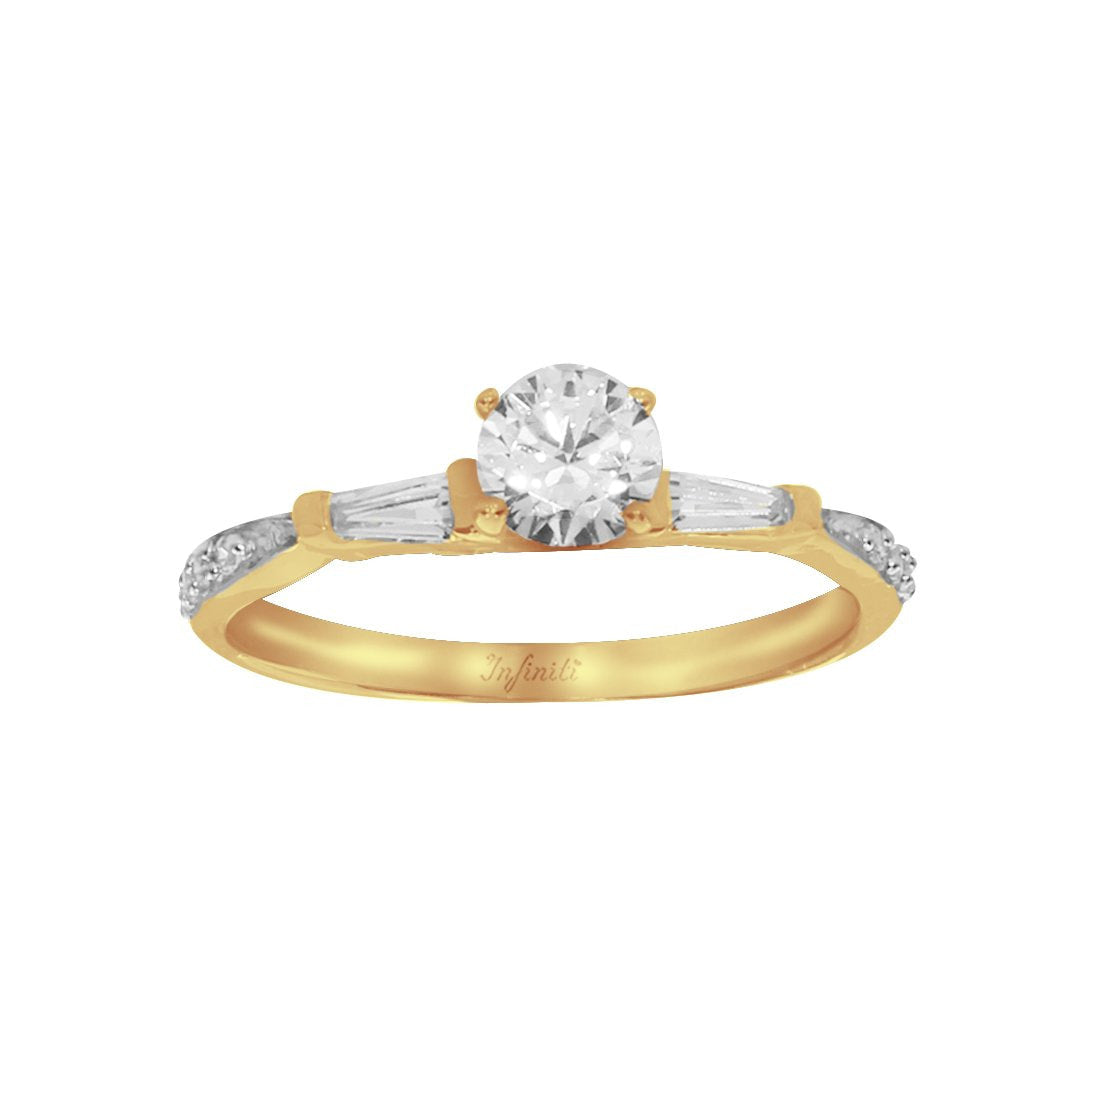 Anillo Oro 10k, con Zirconia Central de 5 mm, Baguette Laterales